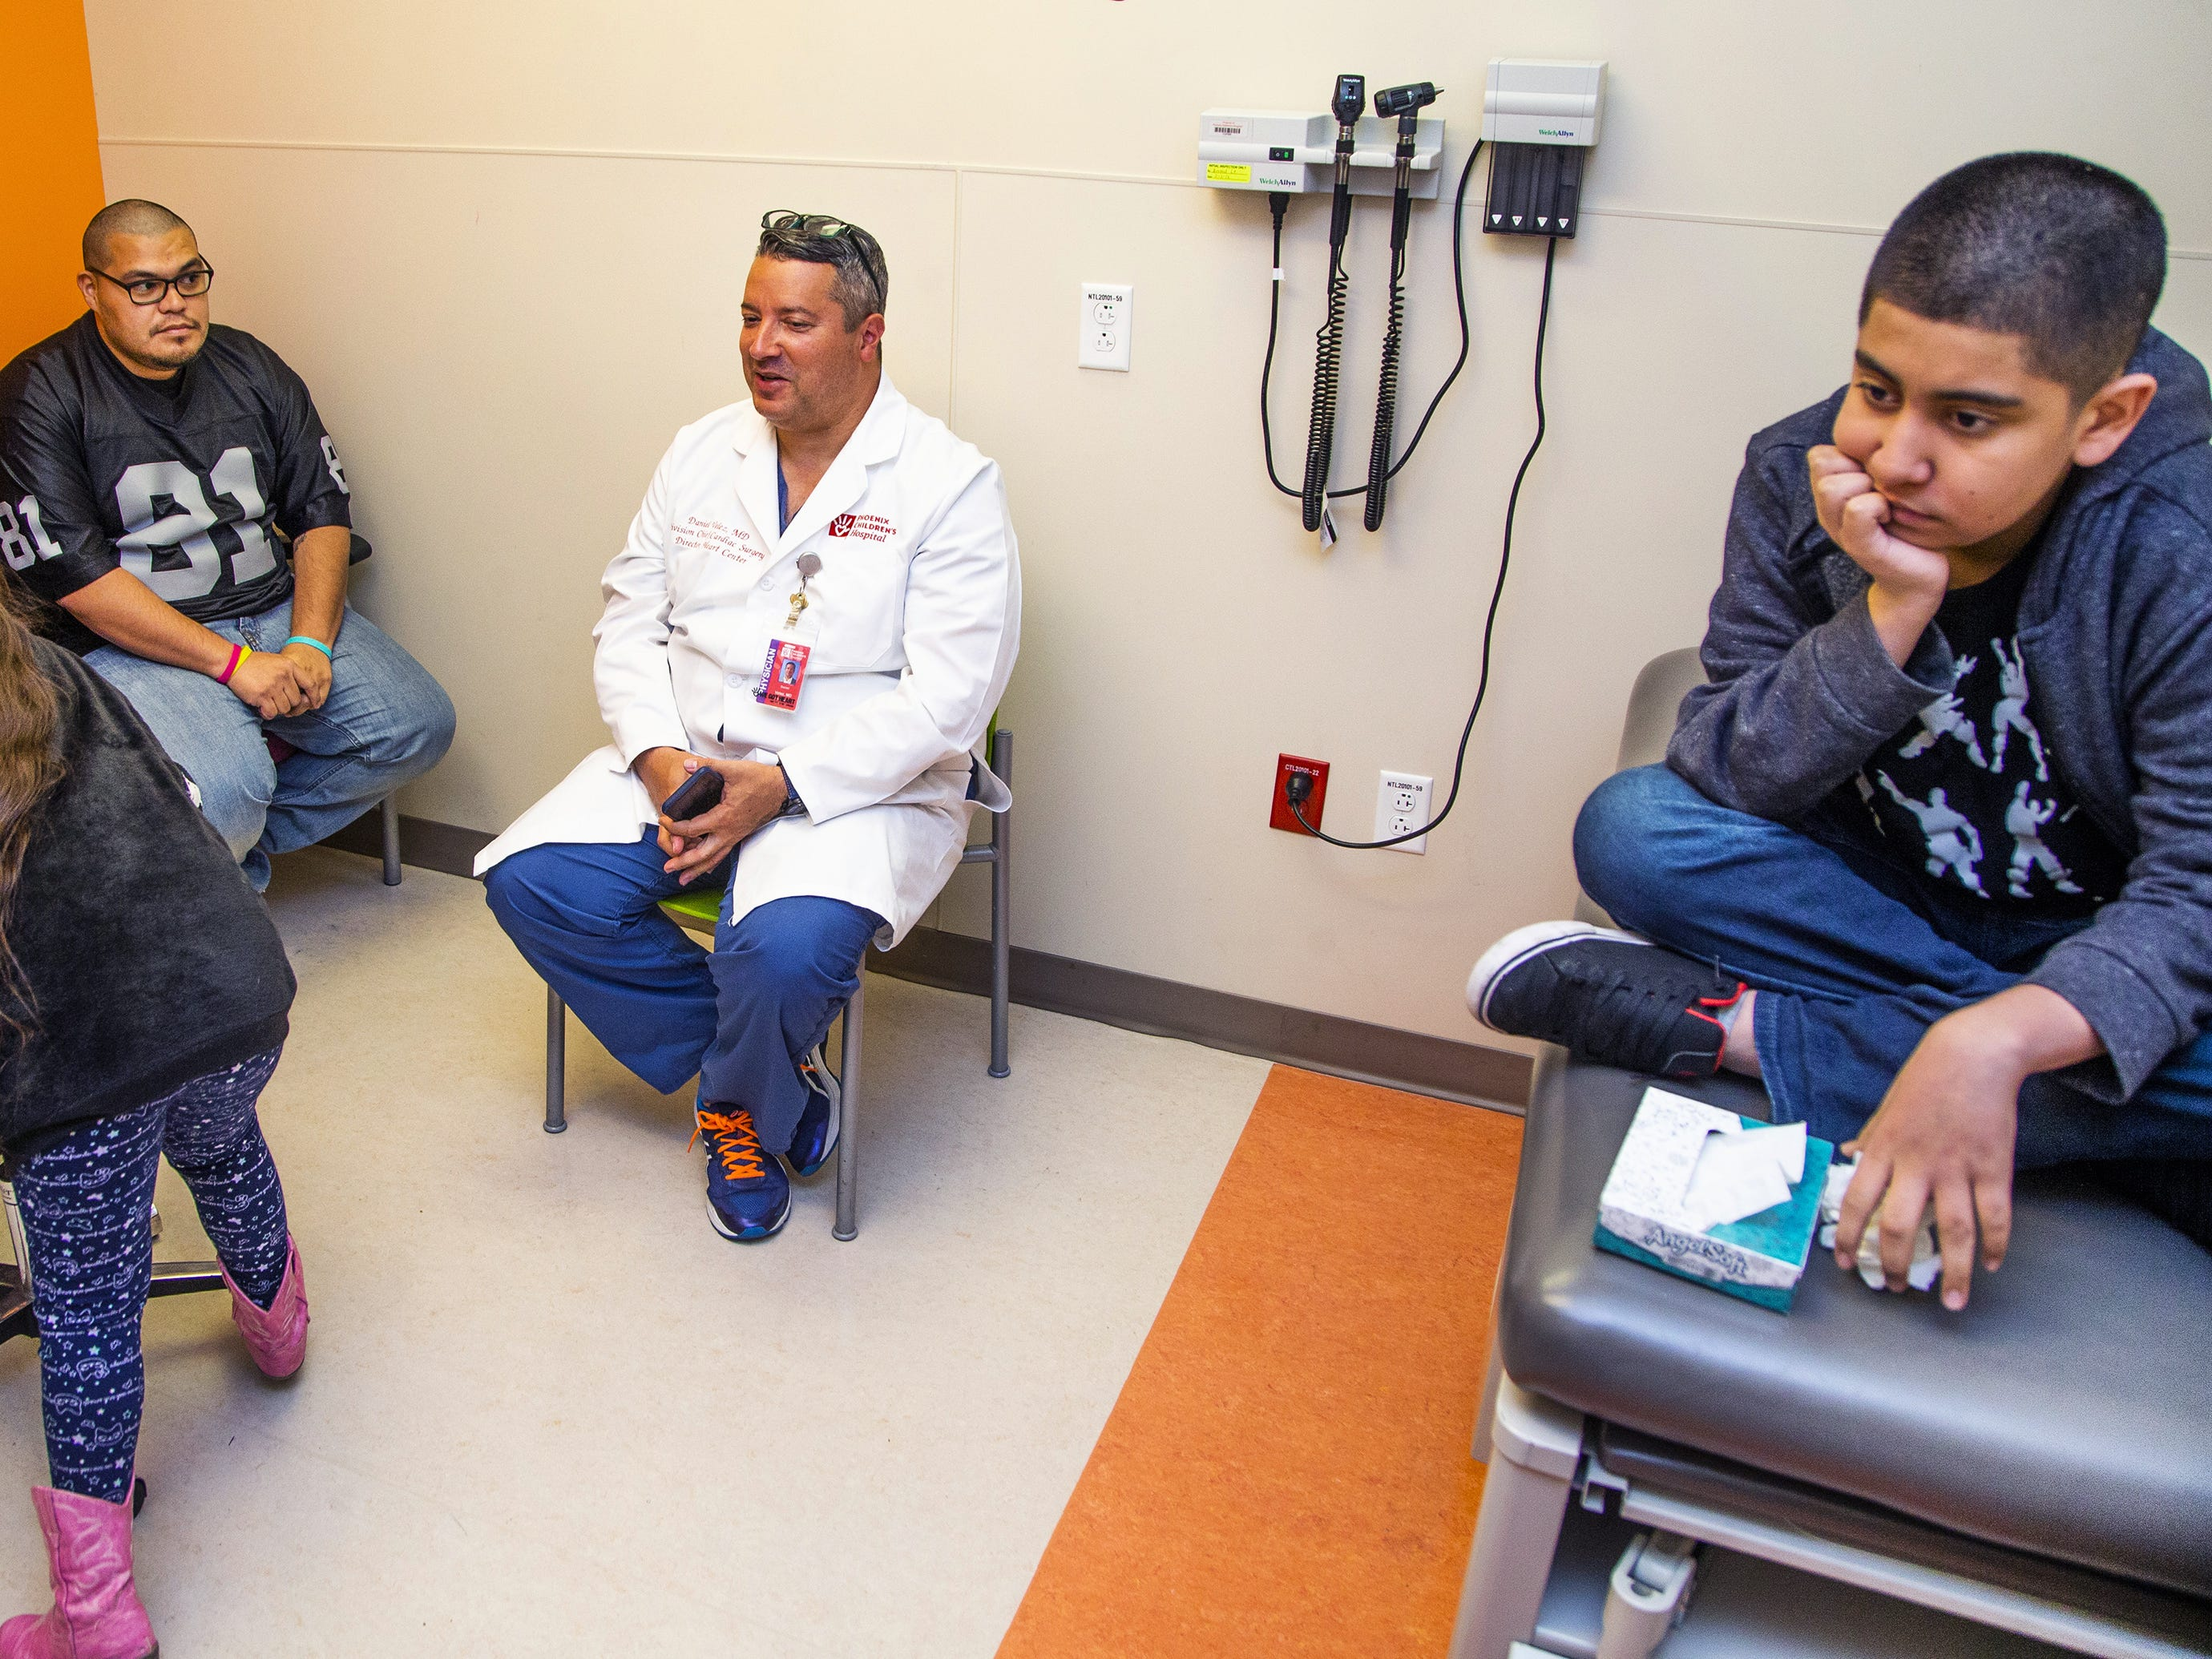 Dr. Daniel Velez speaks with 11-year-old Gabriel Gonzalez, right, and Gabriel's family: sister Aliyah Garcia, 7, mother Anabel Gonzalez, and father Jesus Garcia at Phoenix Children's Hospital, Tuesday.